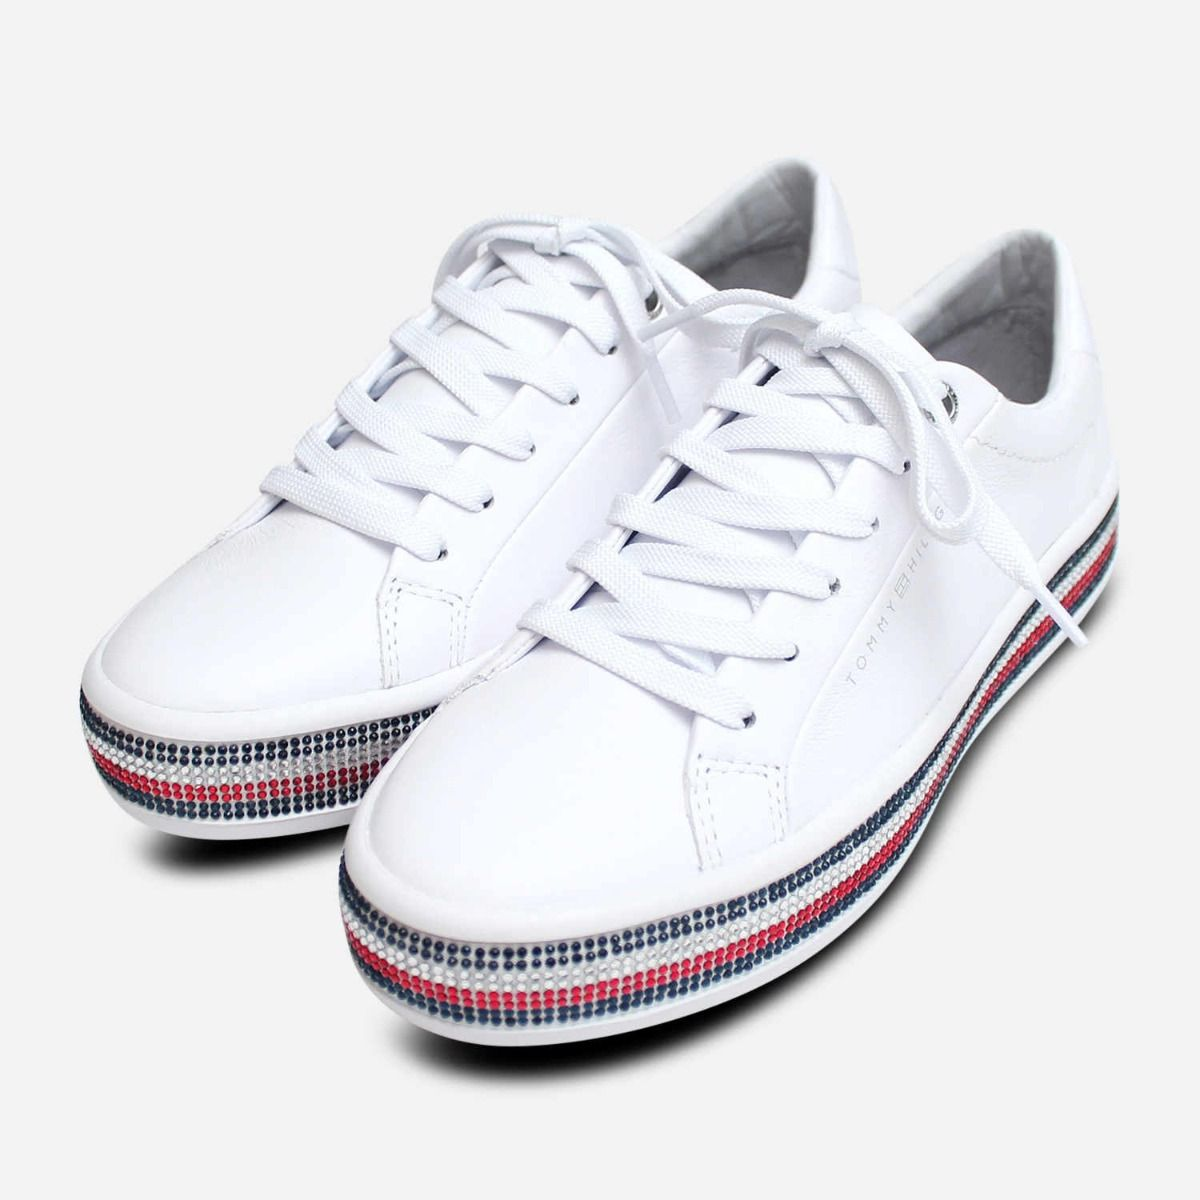 Tommy Hilfiger Jeweled Sparkle Sneakers